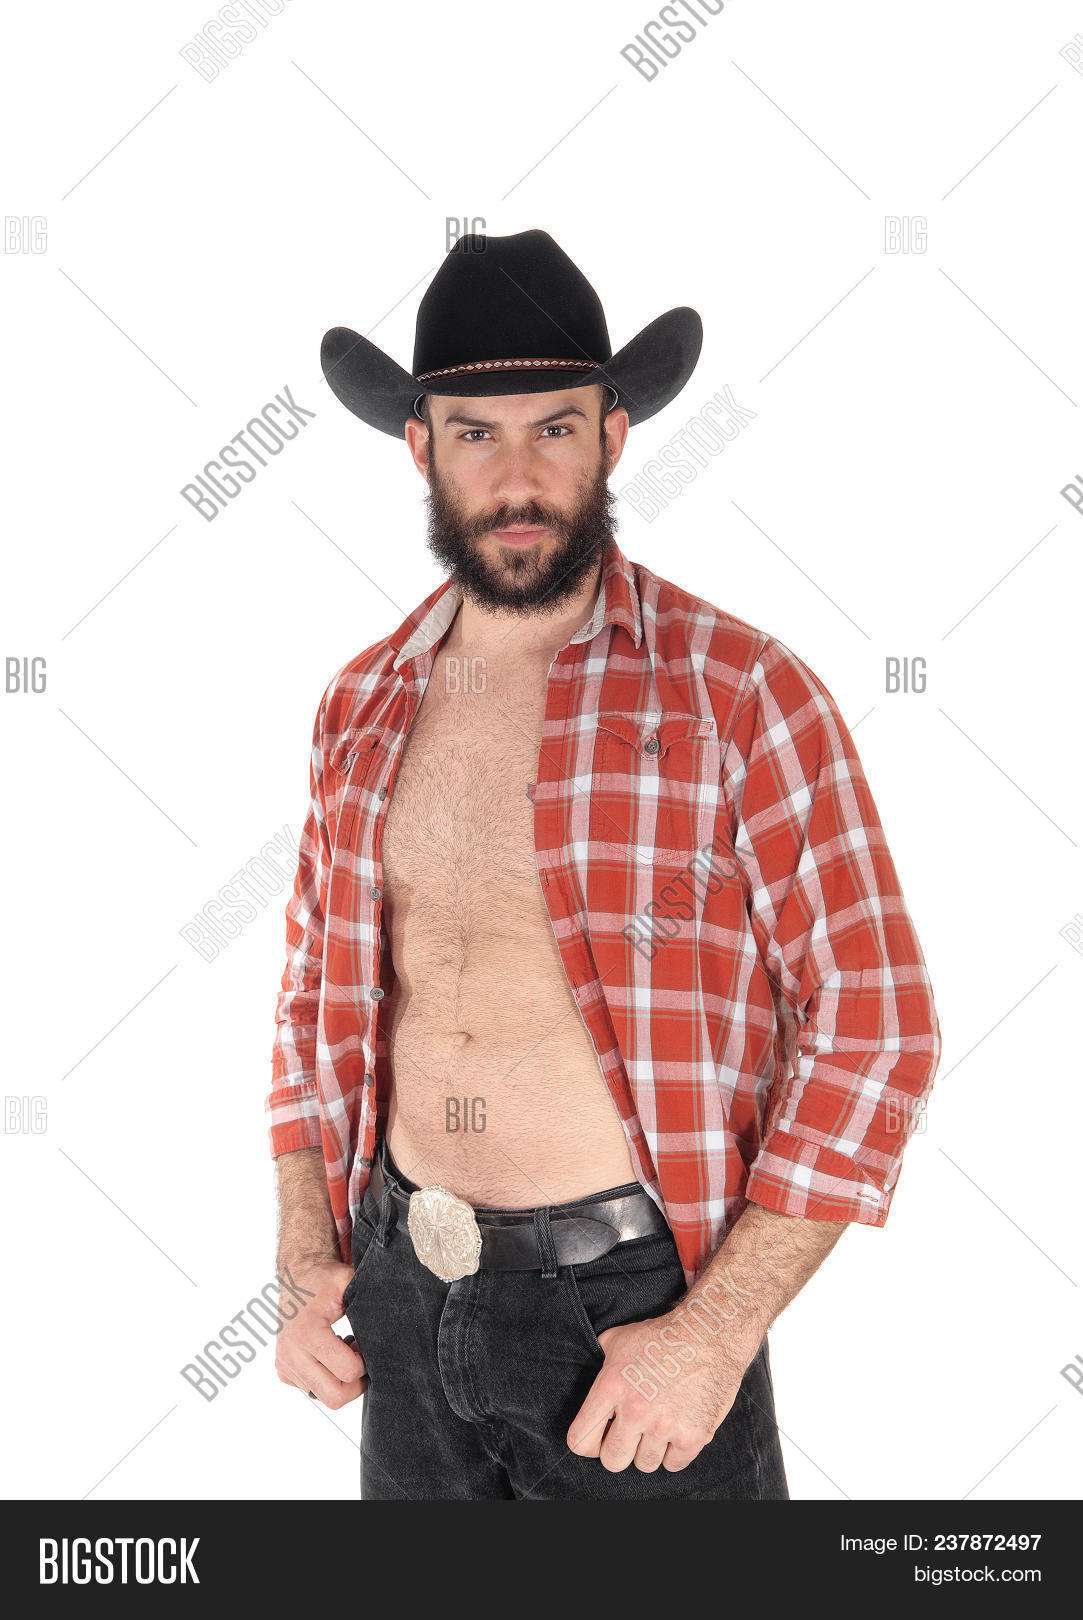 b627dee3d0 A close up image of a young man in a open checkered shirt wearing a cowboy  hat and black jeans